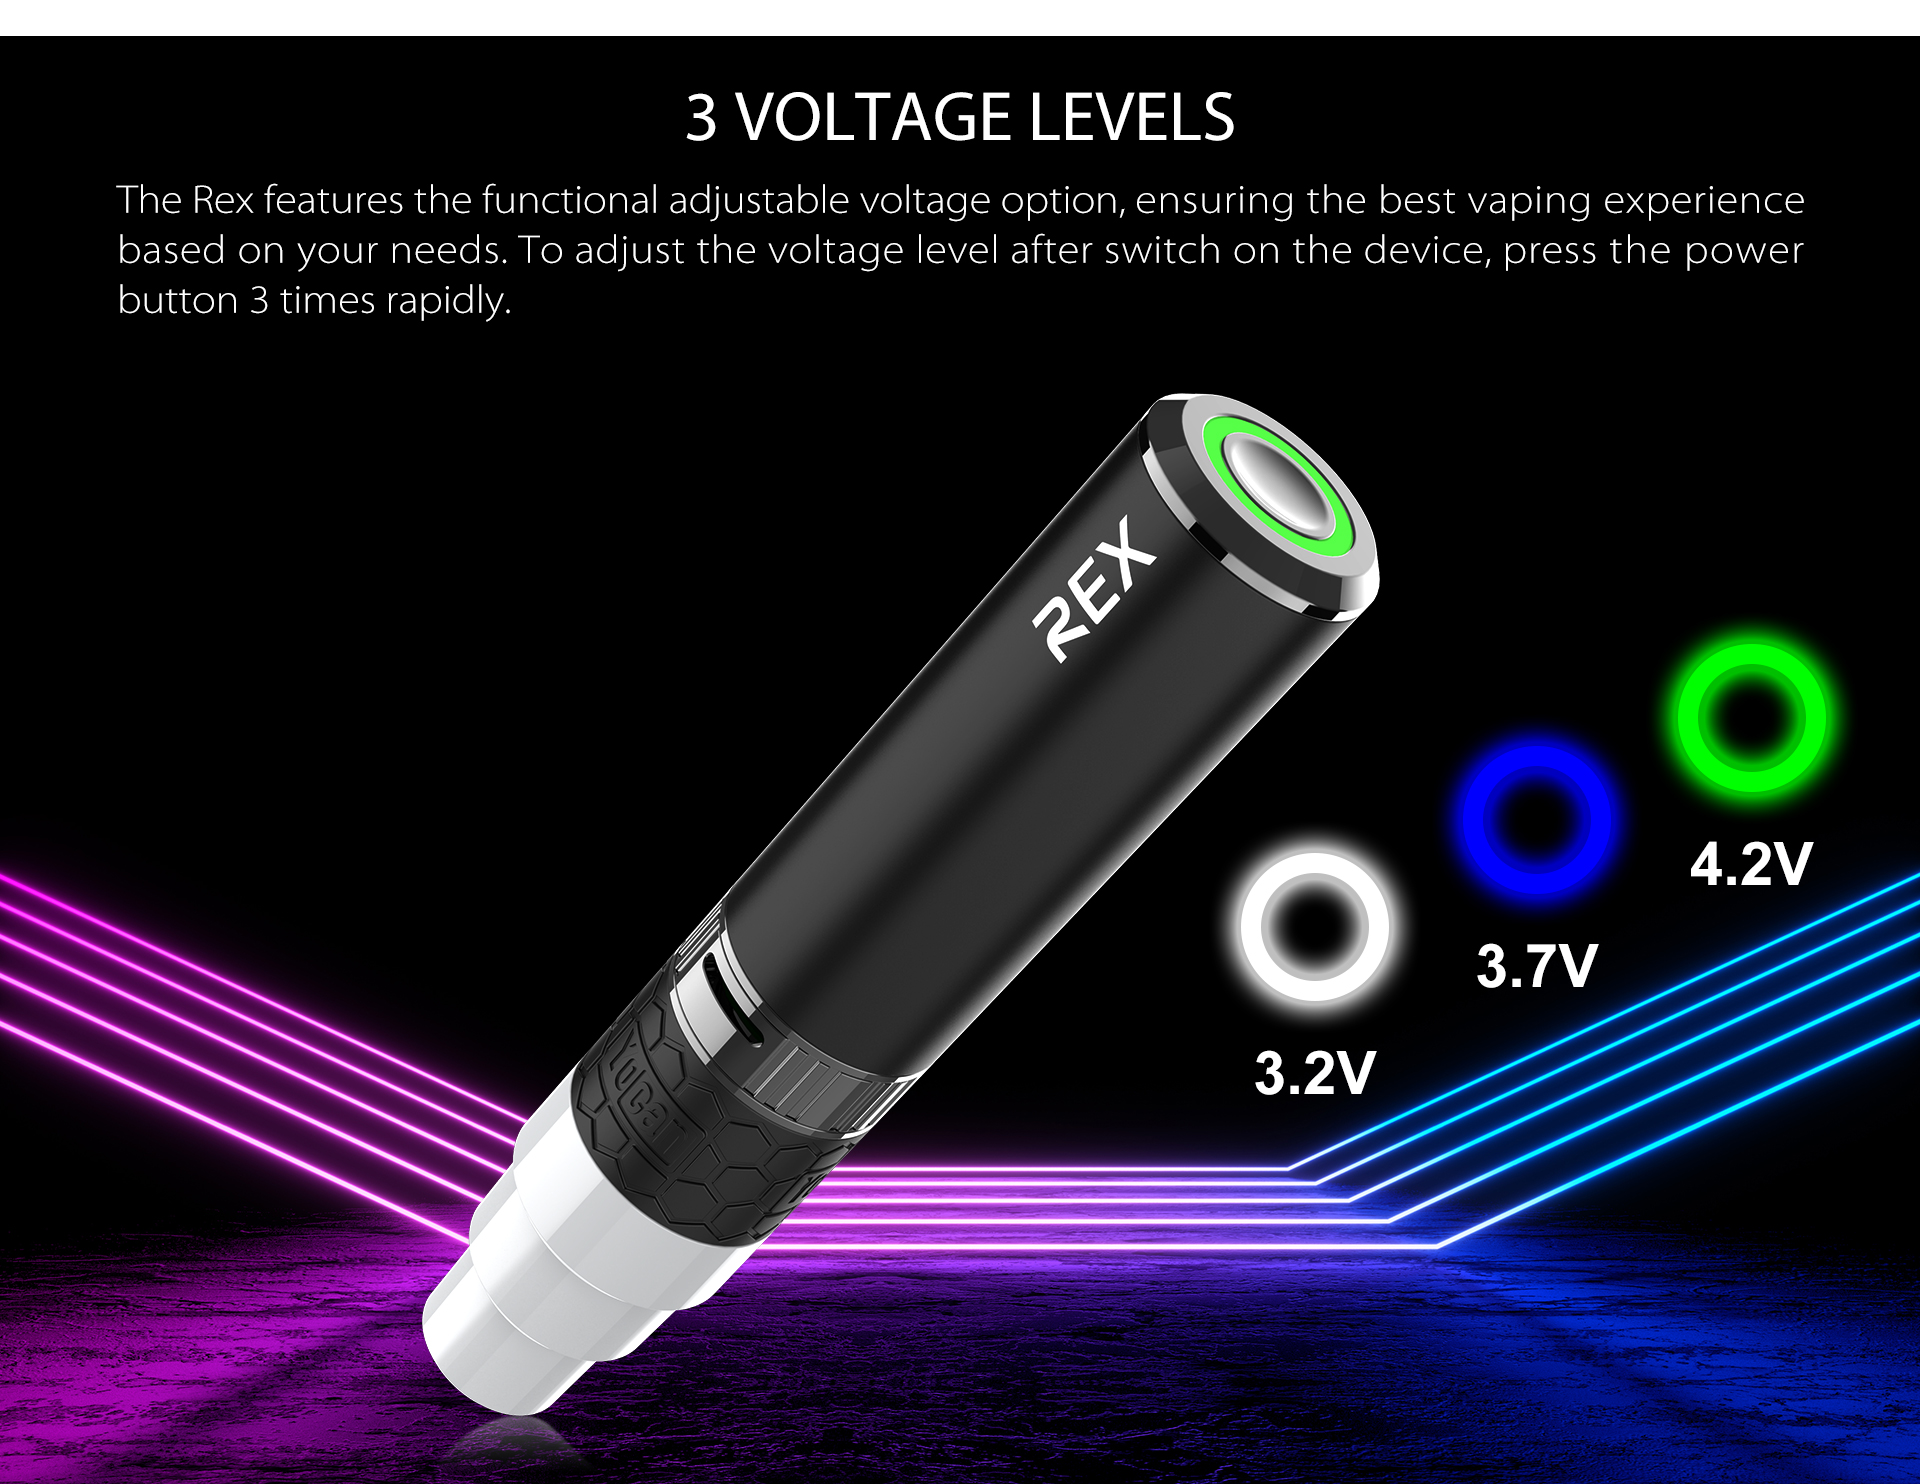 The Yocan Rex features 3 preset functional adjustable voltage option